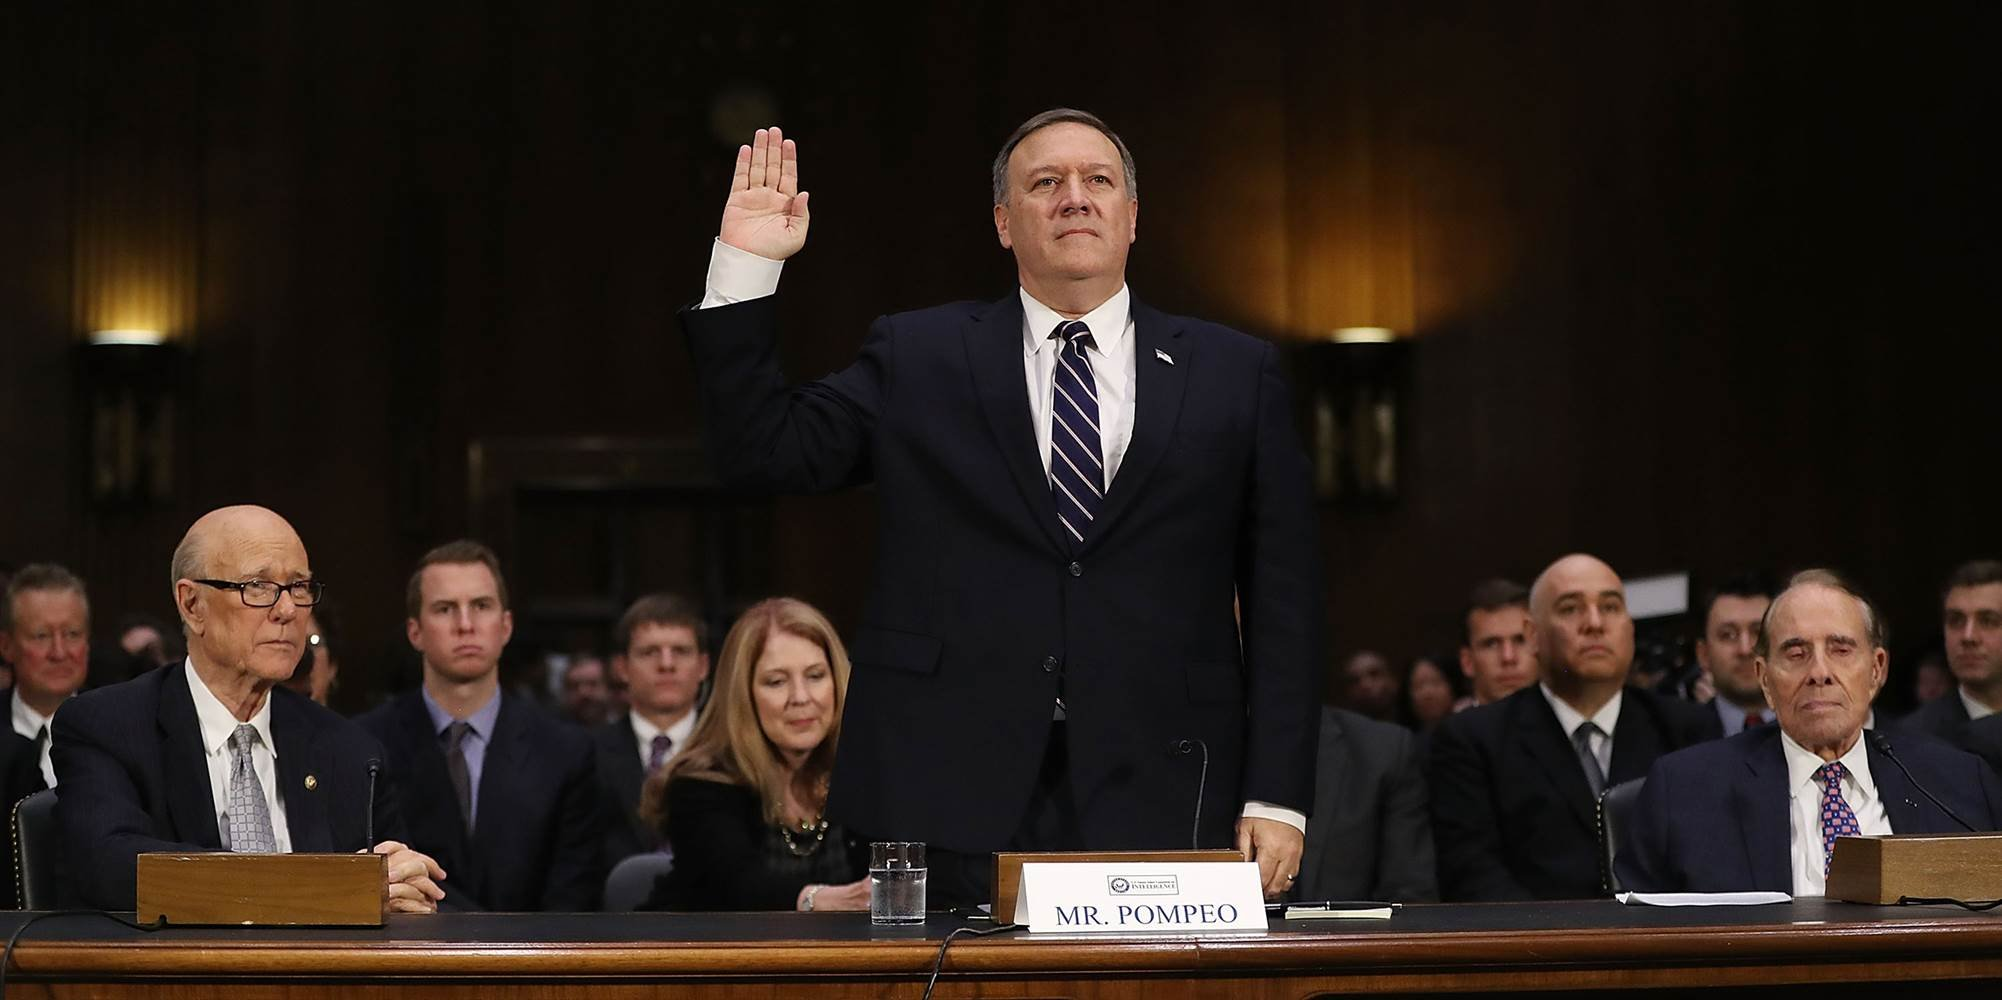 U.S. President-elect Donald Trump's nominee for the director of the CIA, Rep. Mike Pompeo (R-KS) is sworn in at his confirmation hearing before the Senate (Select) Intelligence Committee.